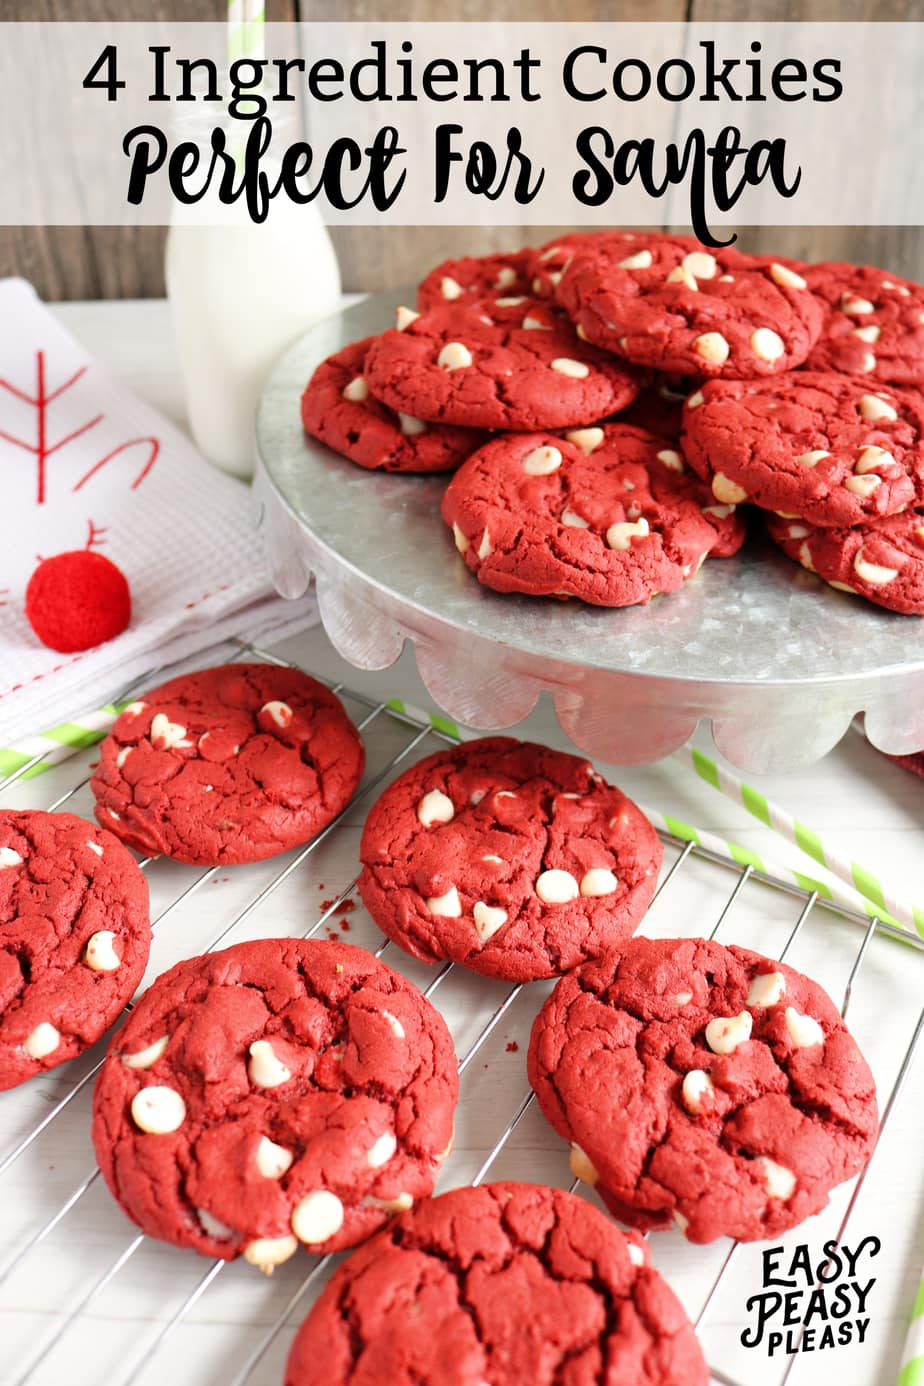 Easy 4 Ingredient Red Velvet Cake Mix Cookies perfect to whip up for Santa Cookies and milk.